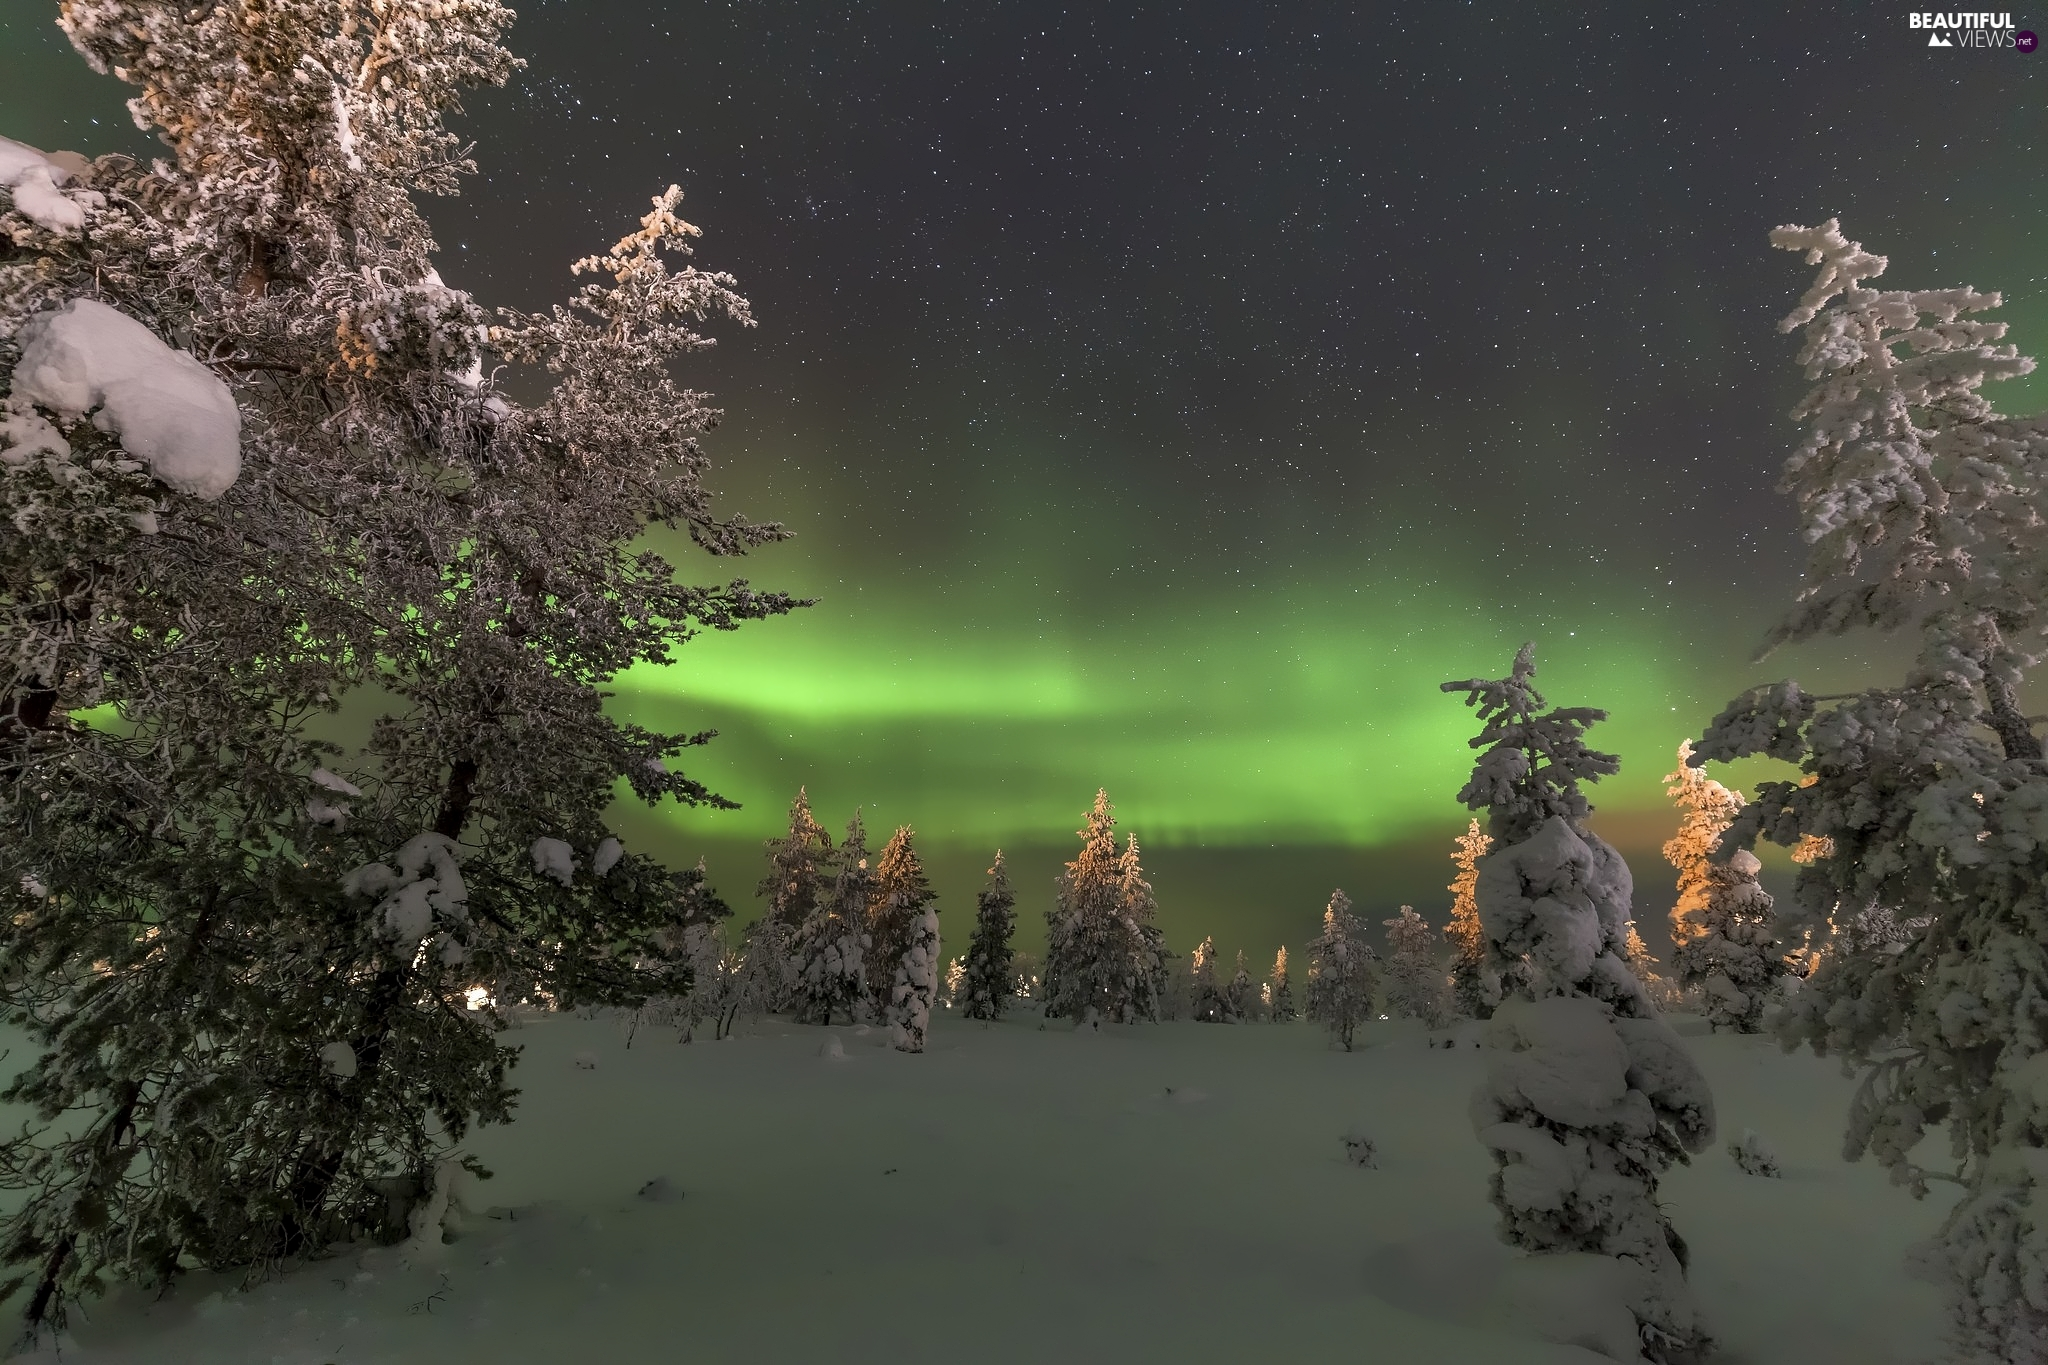 viewes, winter, Spruces, aurora polaris, Snowy, trees